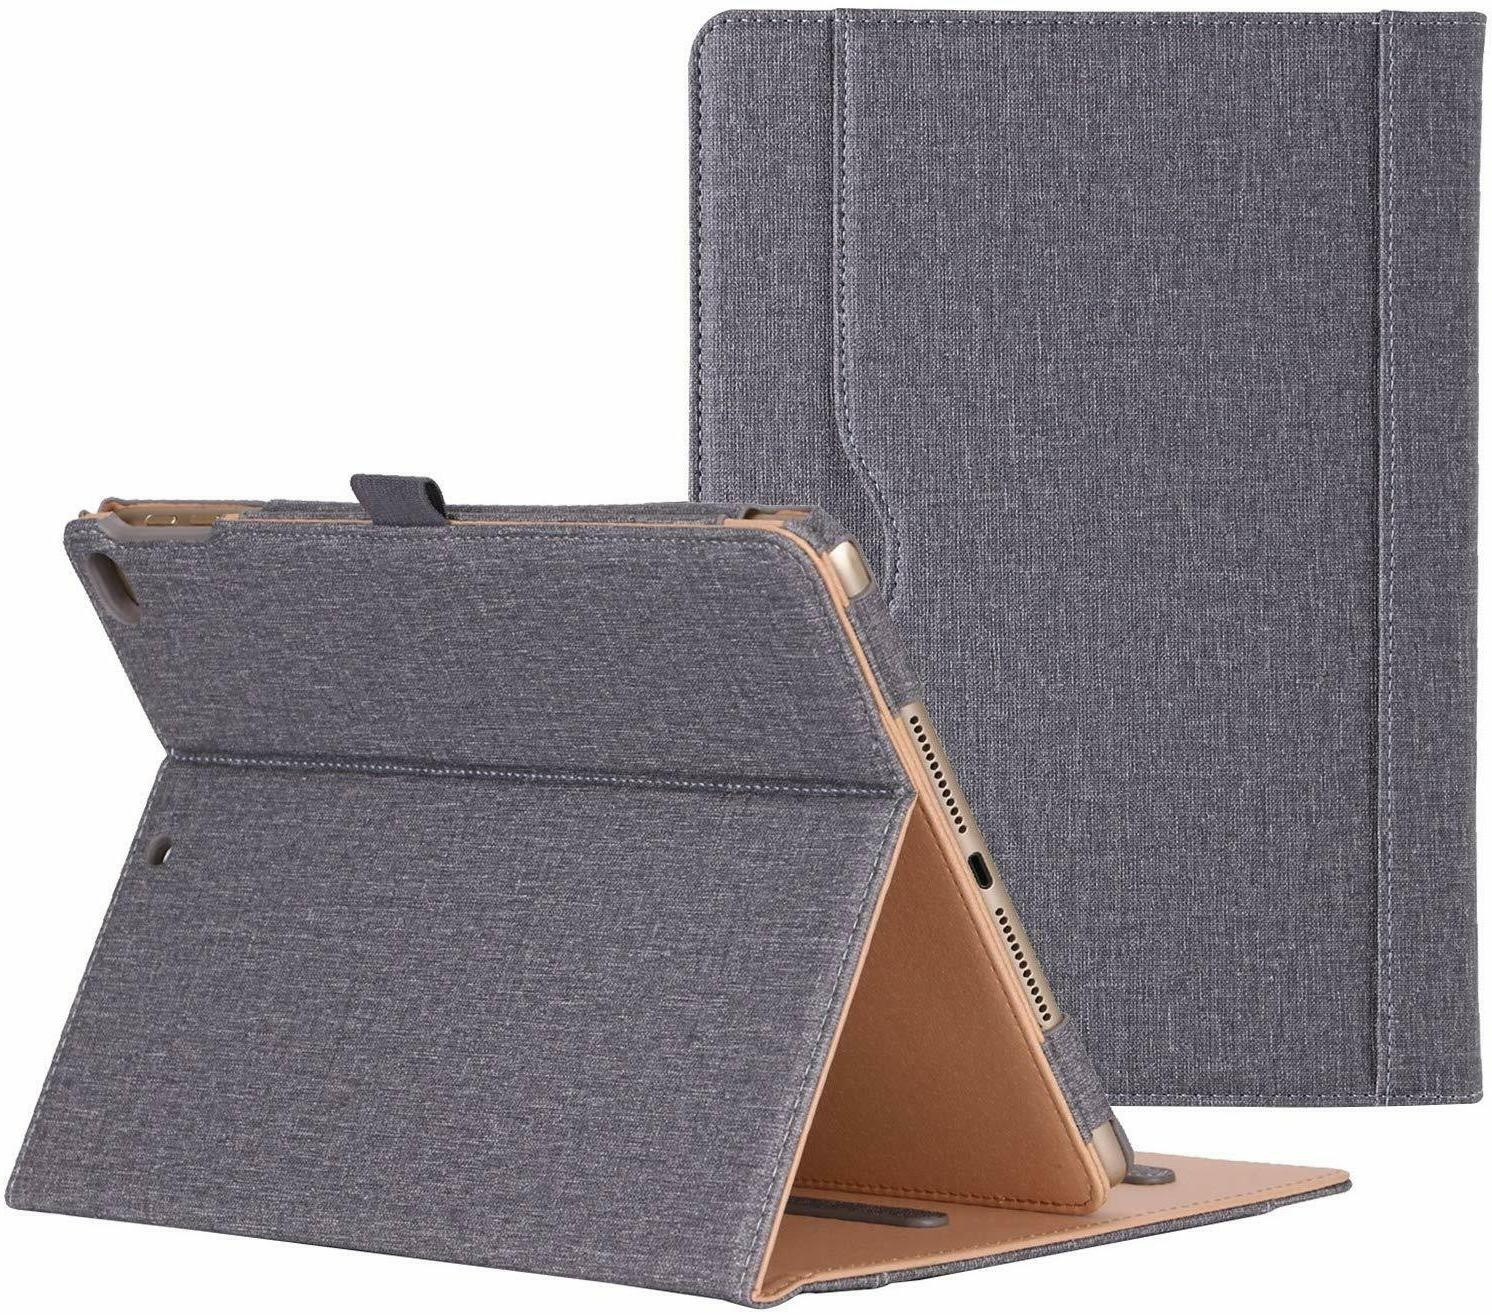 Procase iPad 9.7 Case 2018/2017, iPad Air 2 / iPad Air - Sta